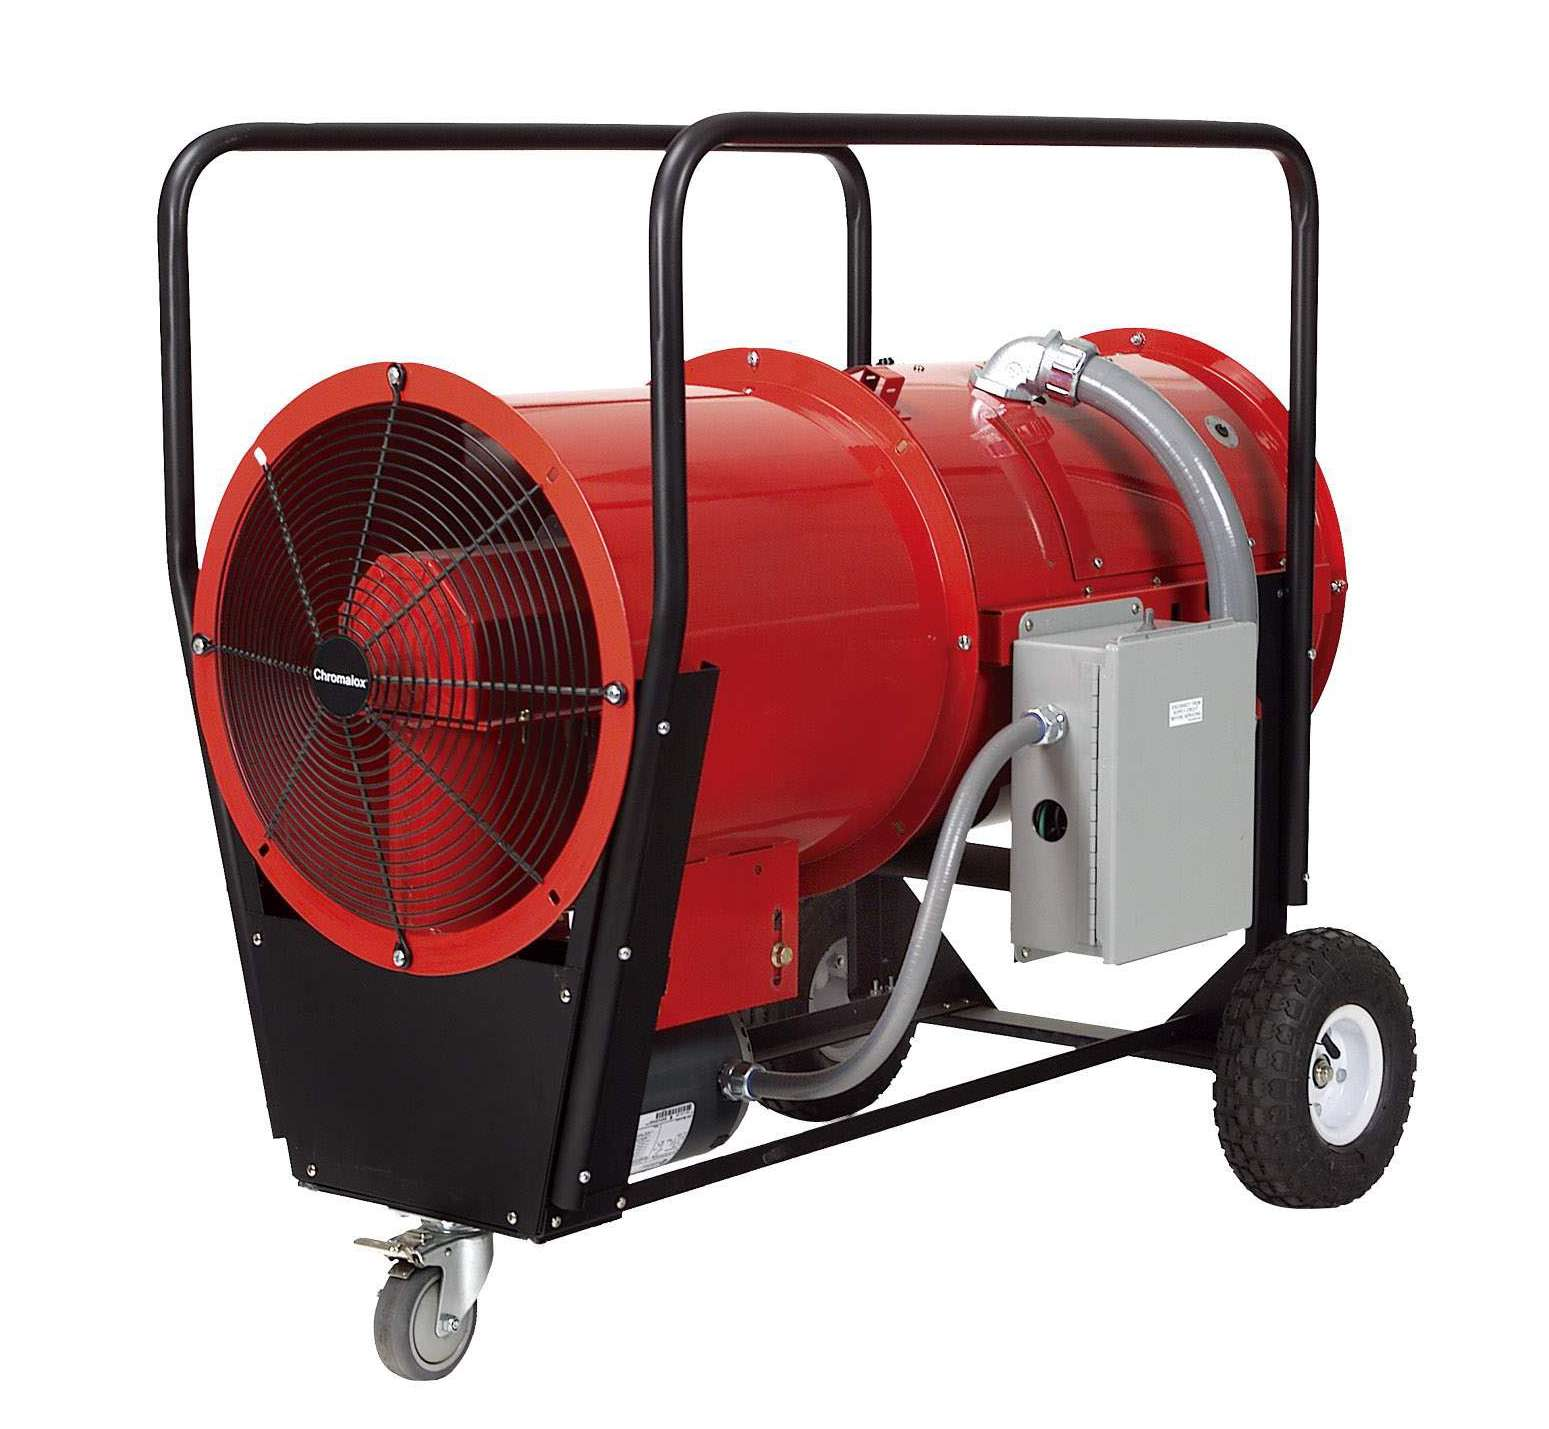 New Superdragon Portable Electric Blower Heaters Offer